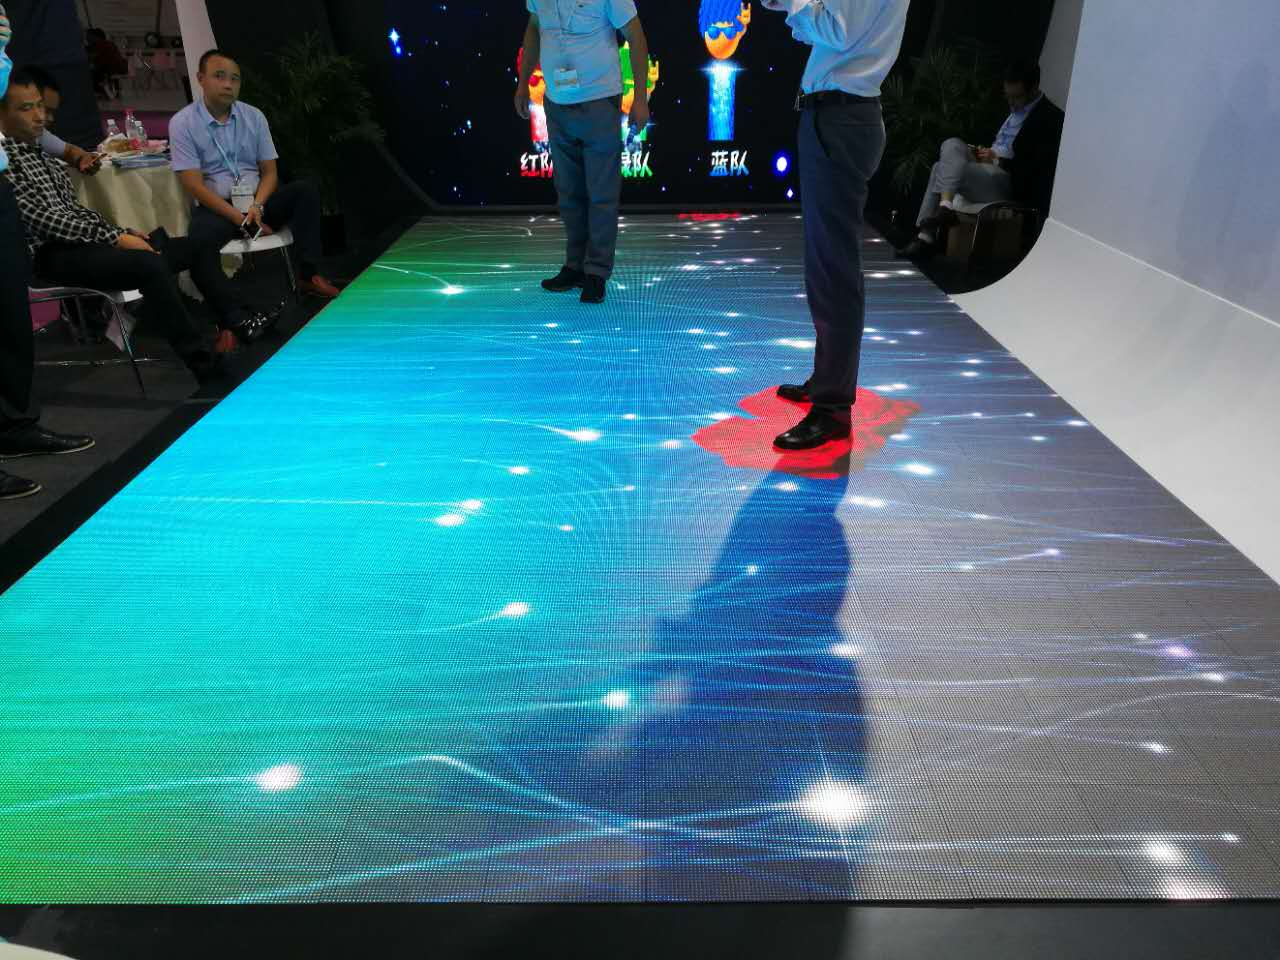 There is an interactive LED floor tile screen re-launch conference.